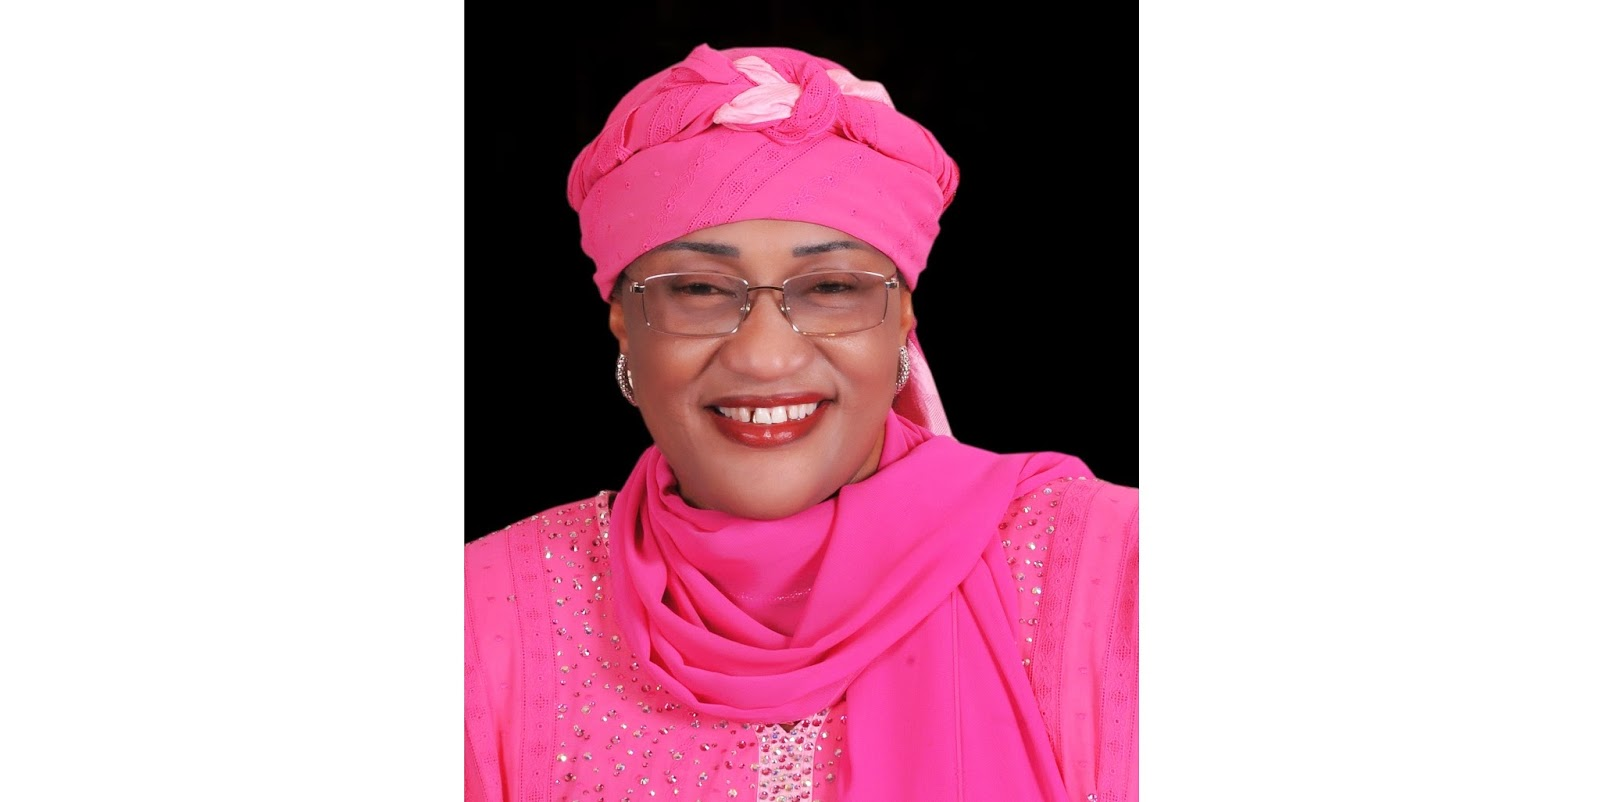 mynaijainfo.com/meet-nigerias-first-female-governor-mrs-aisha-alhassan